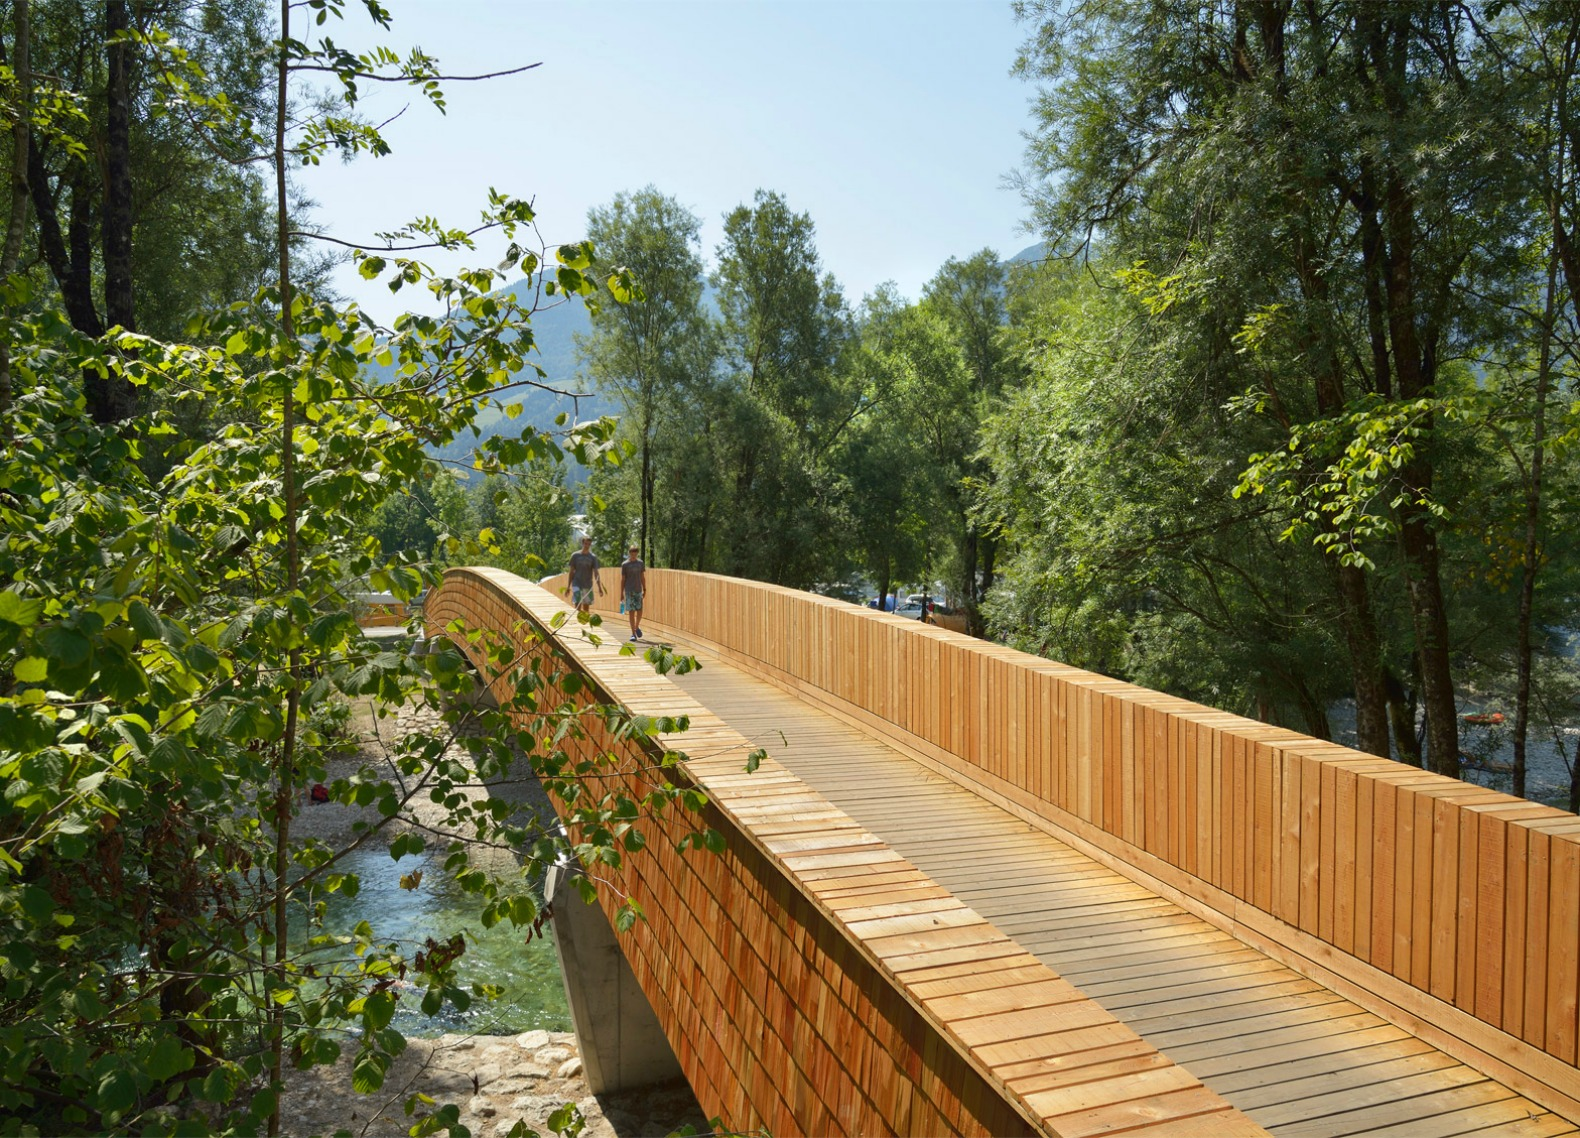 architects create beautiful arched footbridge out of timber planks